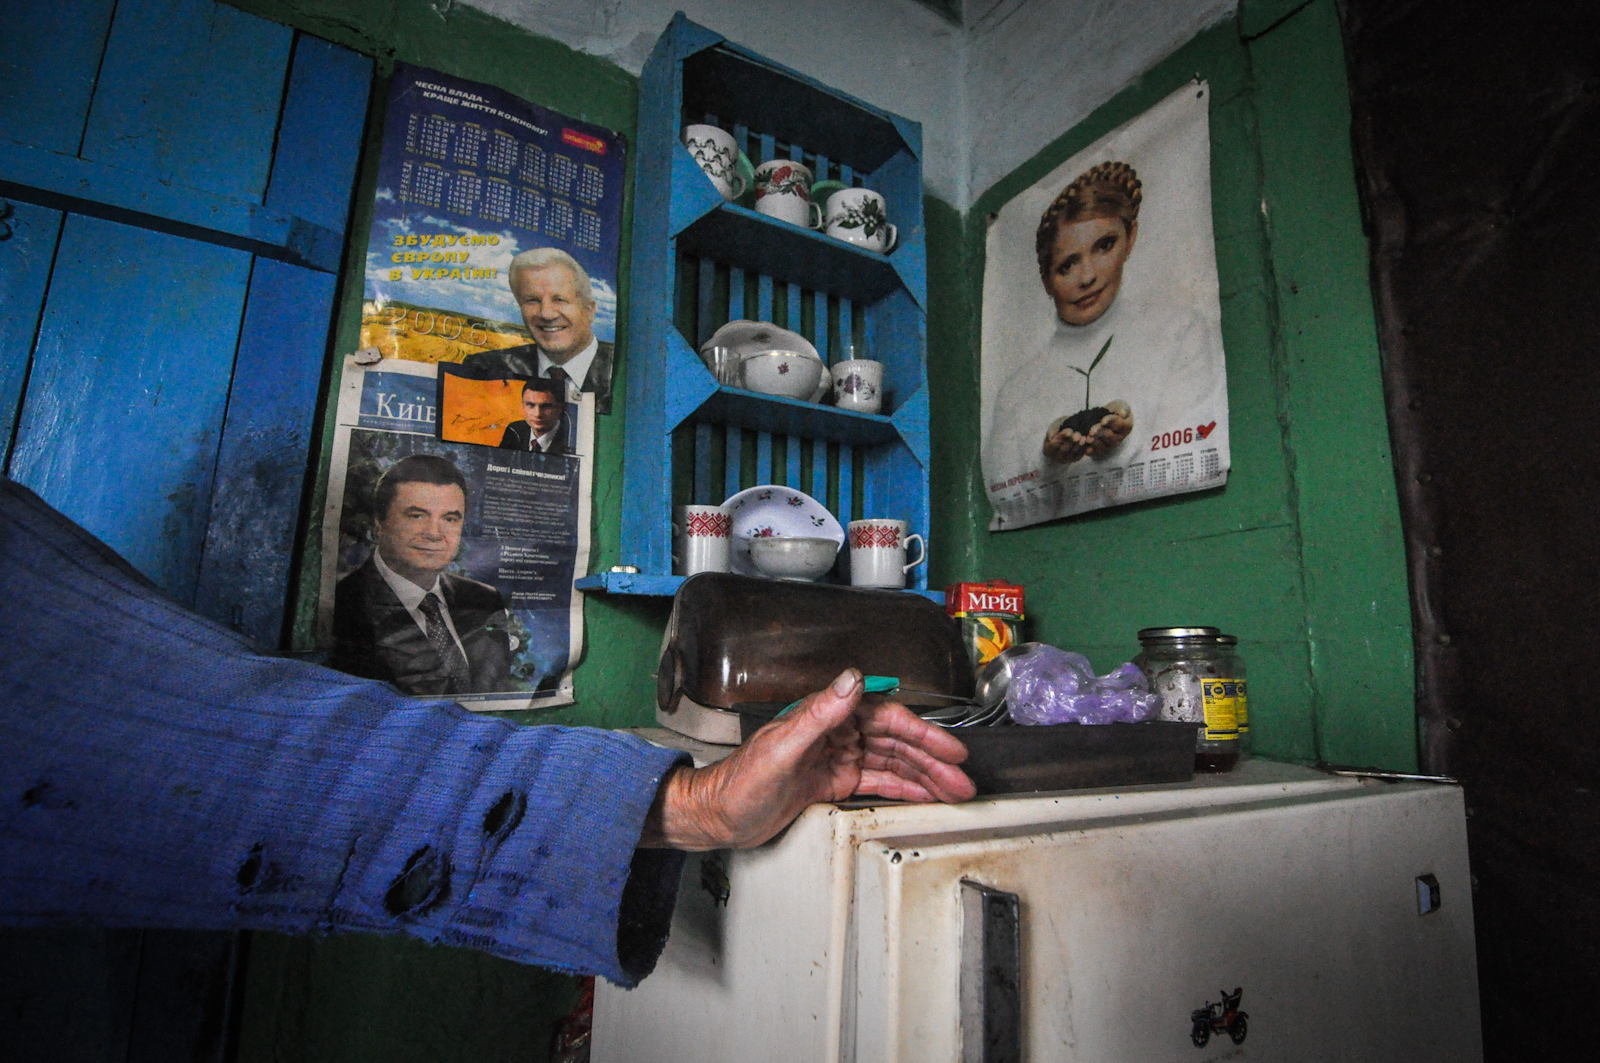 A kitchen near Chernobyl: photos of deposed president Viktor Yanukovych (left) and political rivals Yulia Timoshenko and Vitali Klitschko